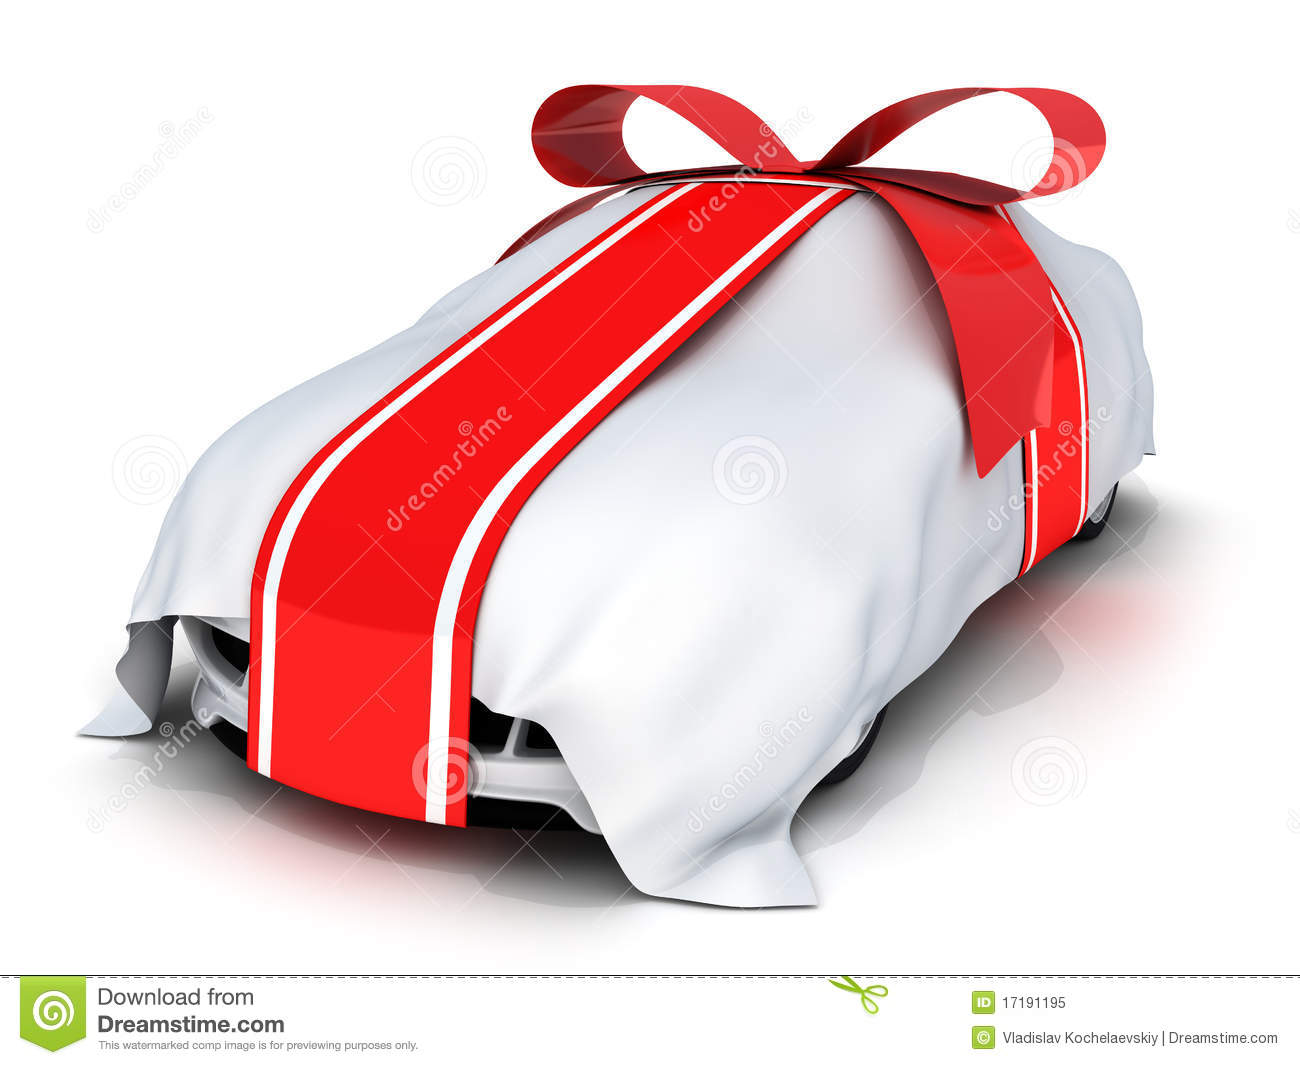 Expensive Car For Sale Or Gift Royalty Free Stock Image: Car Gift Stock Illustration. Image Of Market, Present